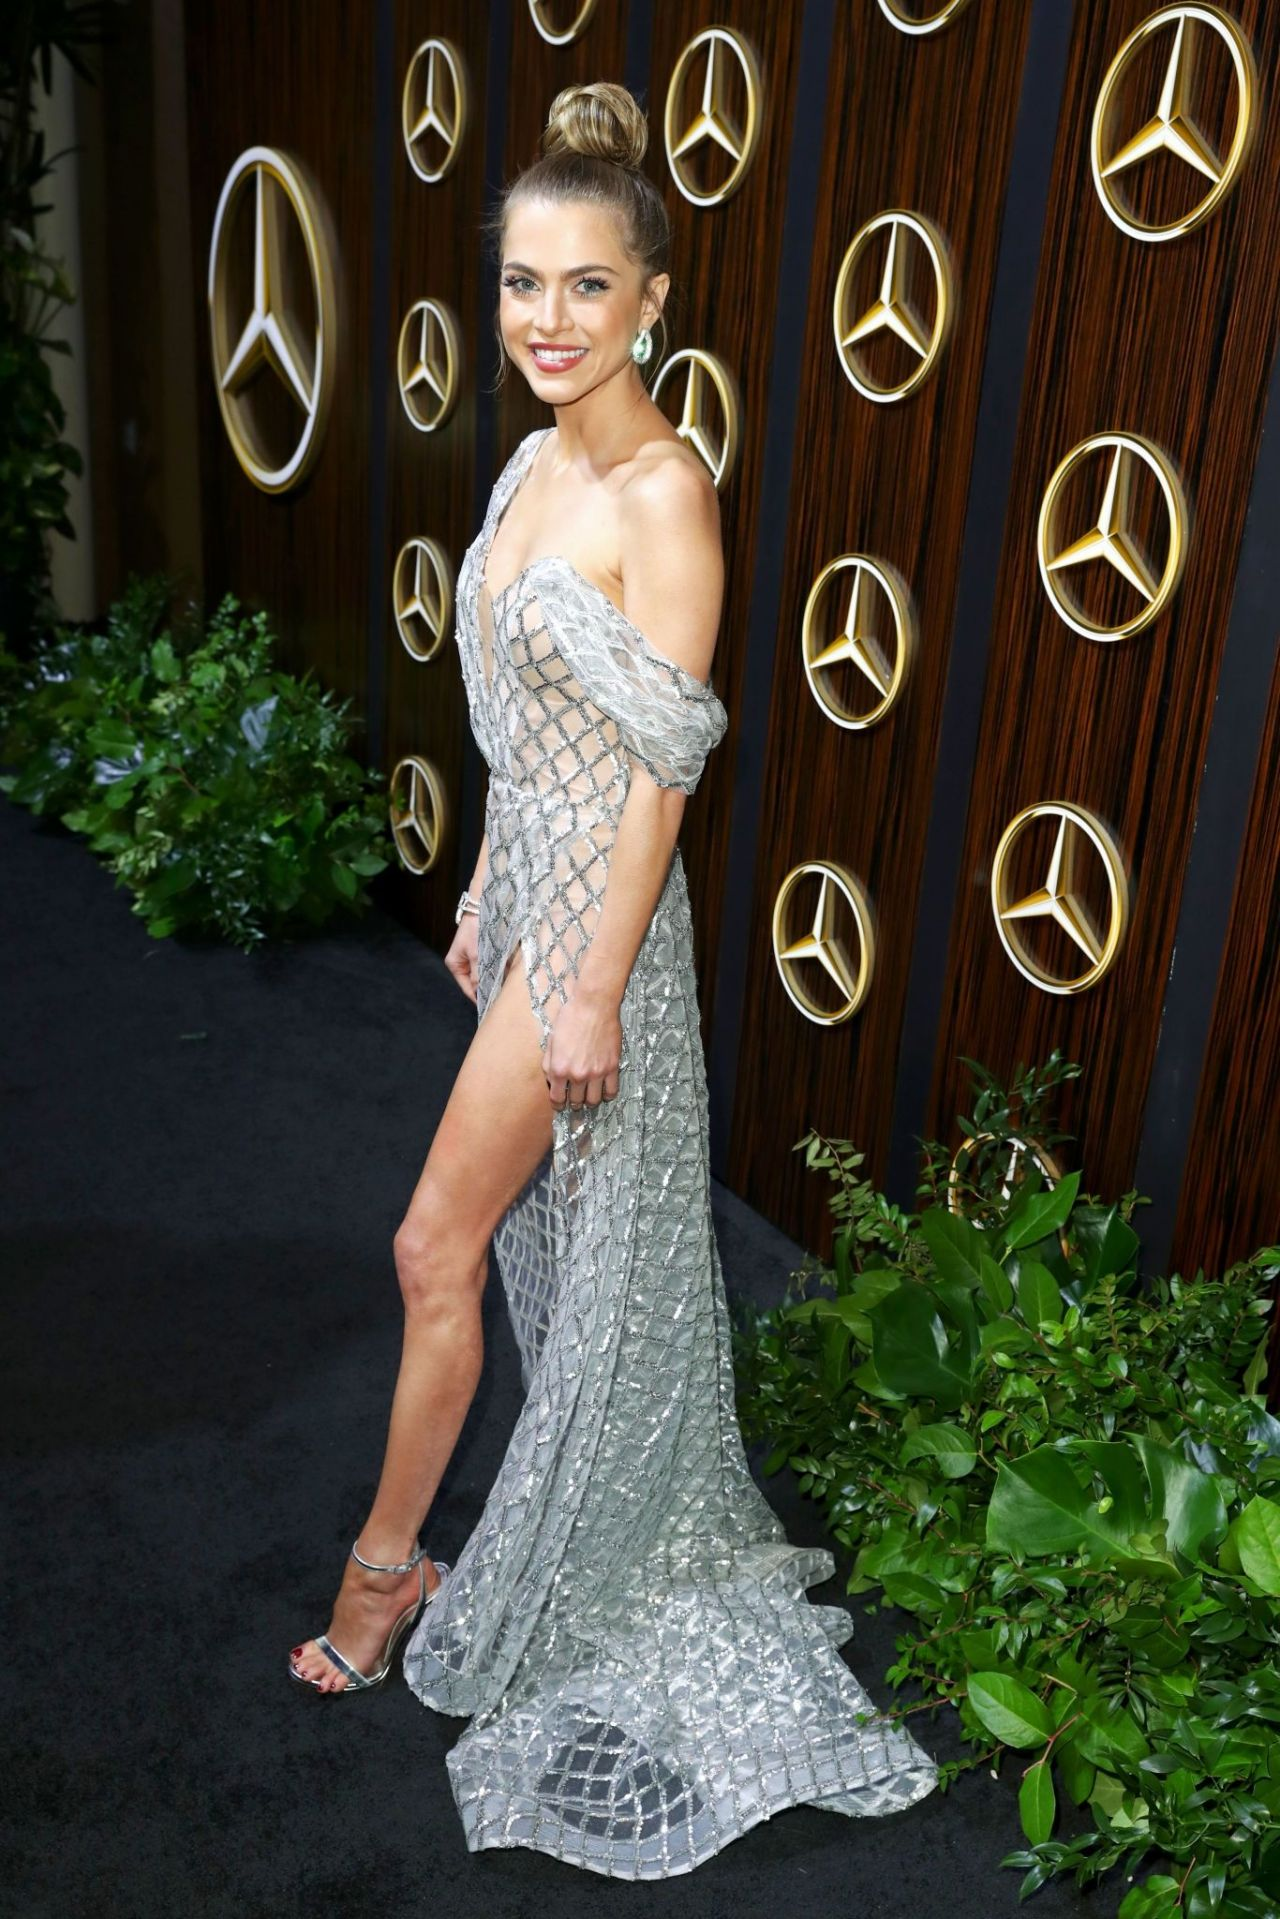 Anne Winters 2019 Mercedes Benz Usa Awards Viewing Party